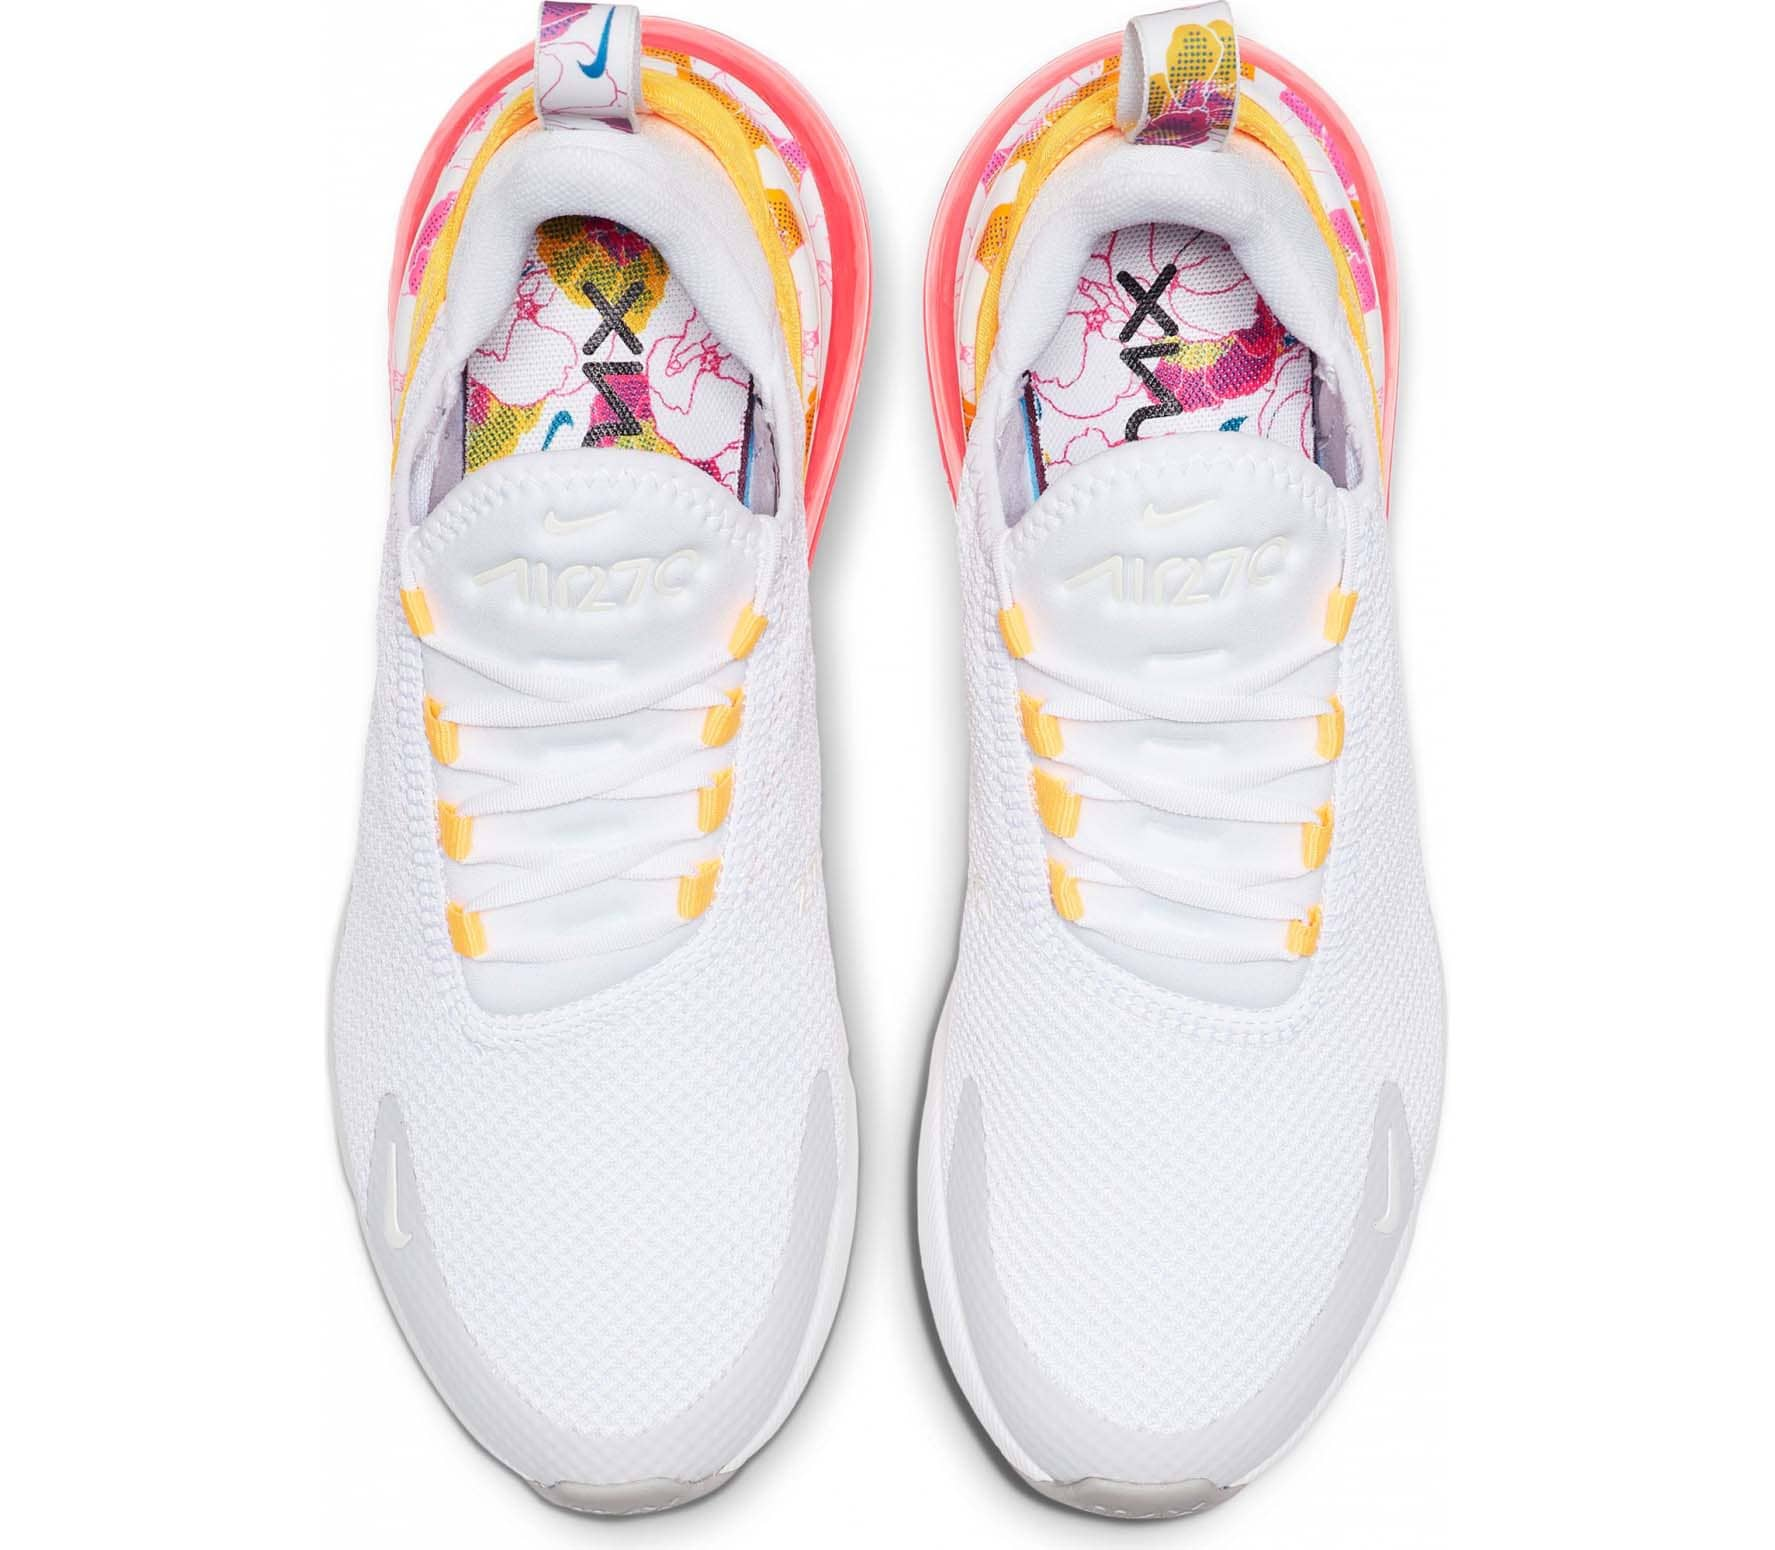 info for adc13 13c6b Nike Sportswear Air Max 270 SE Women Sneakers white